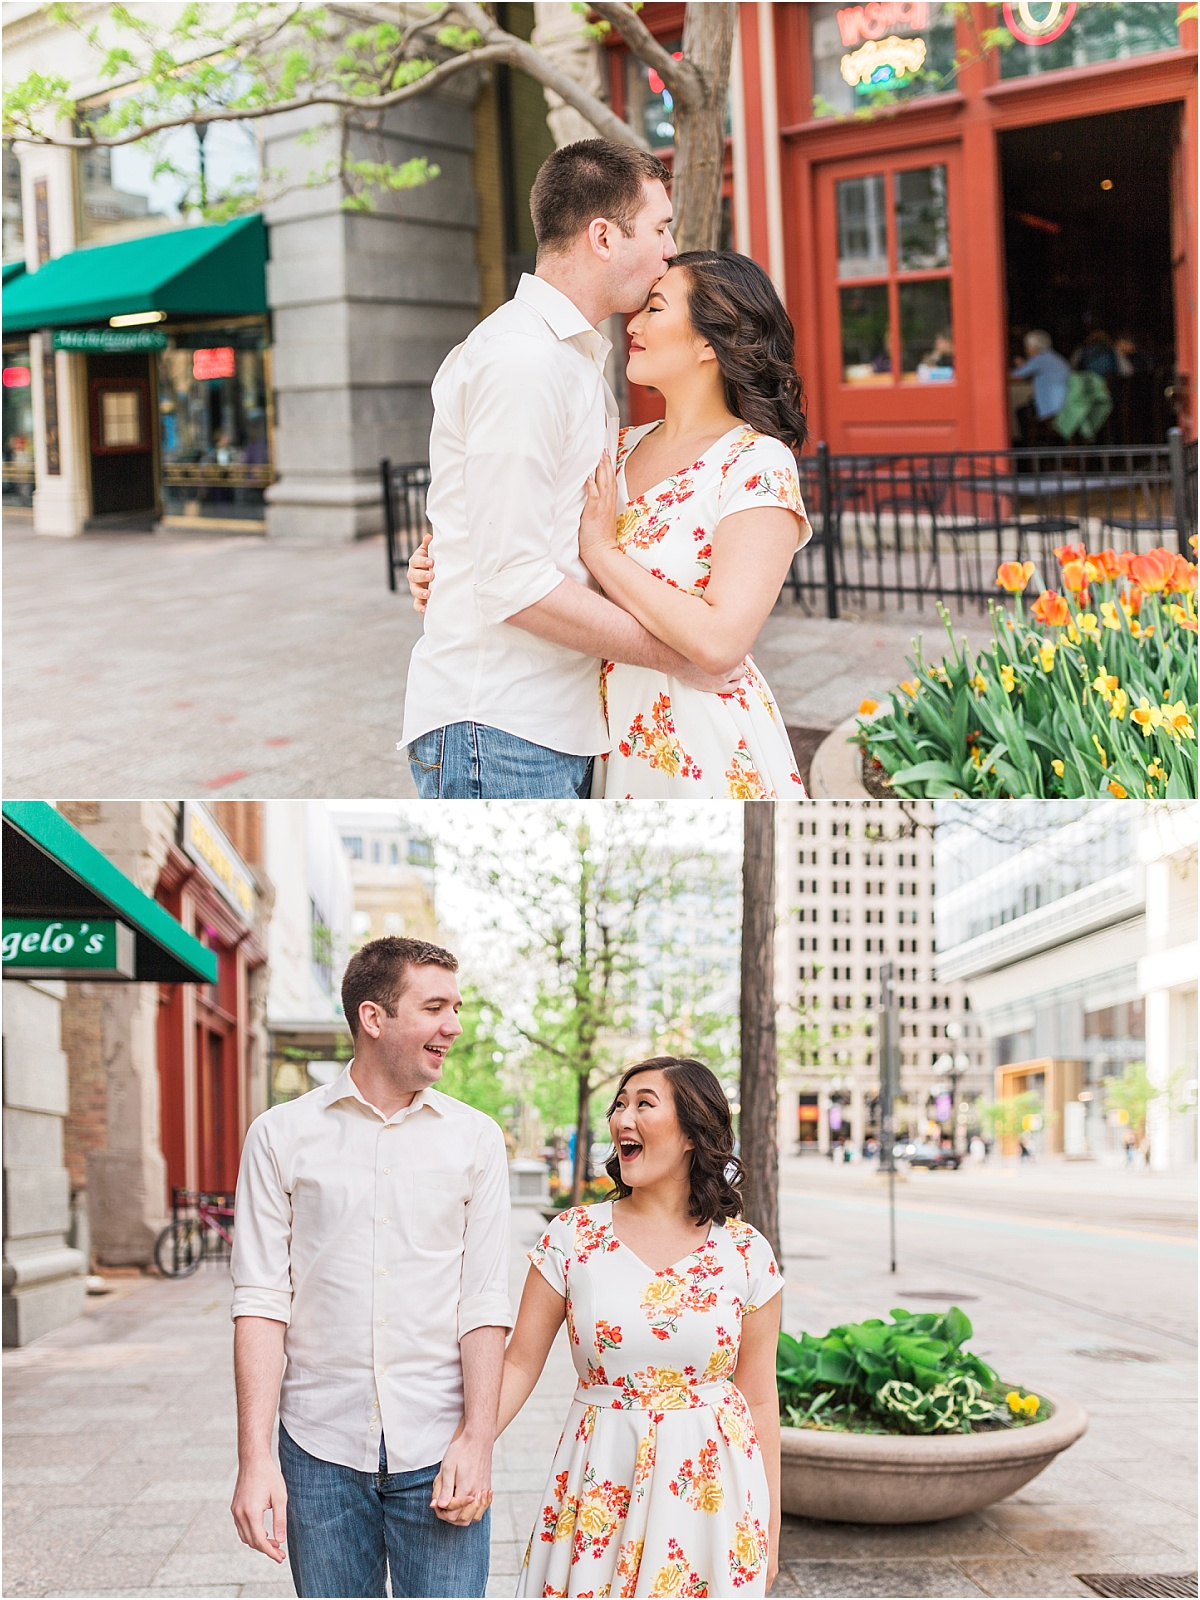 An engagement session in downtown salt lake city. The couple is walking around holding hands, being in love, and kissing.